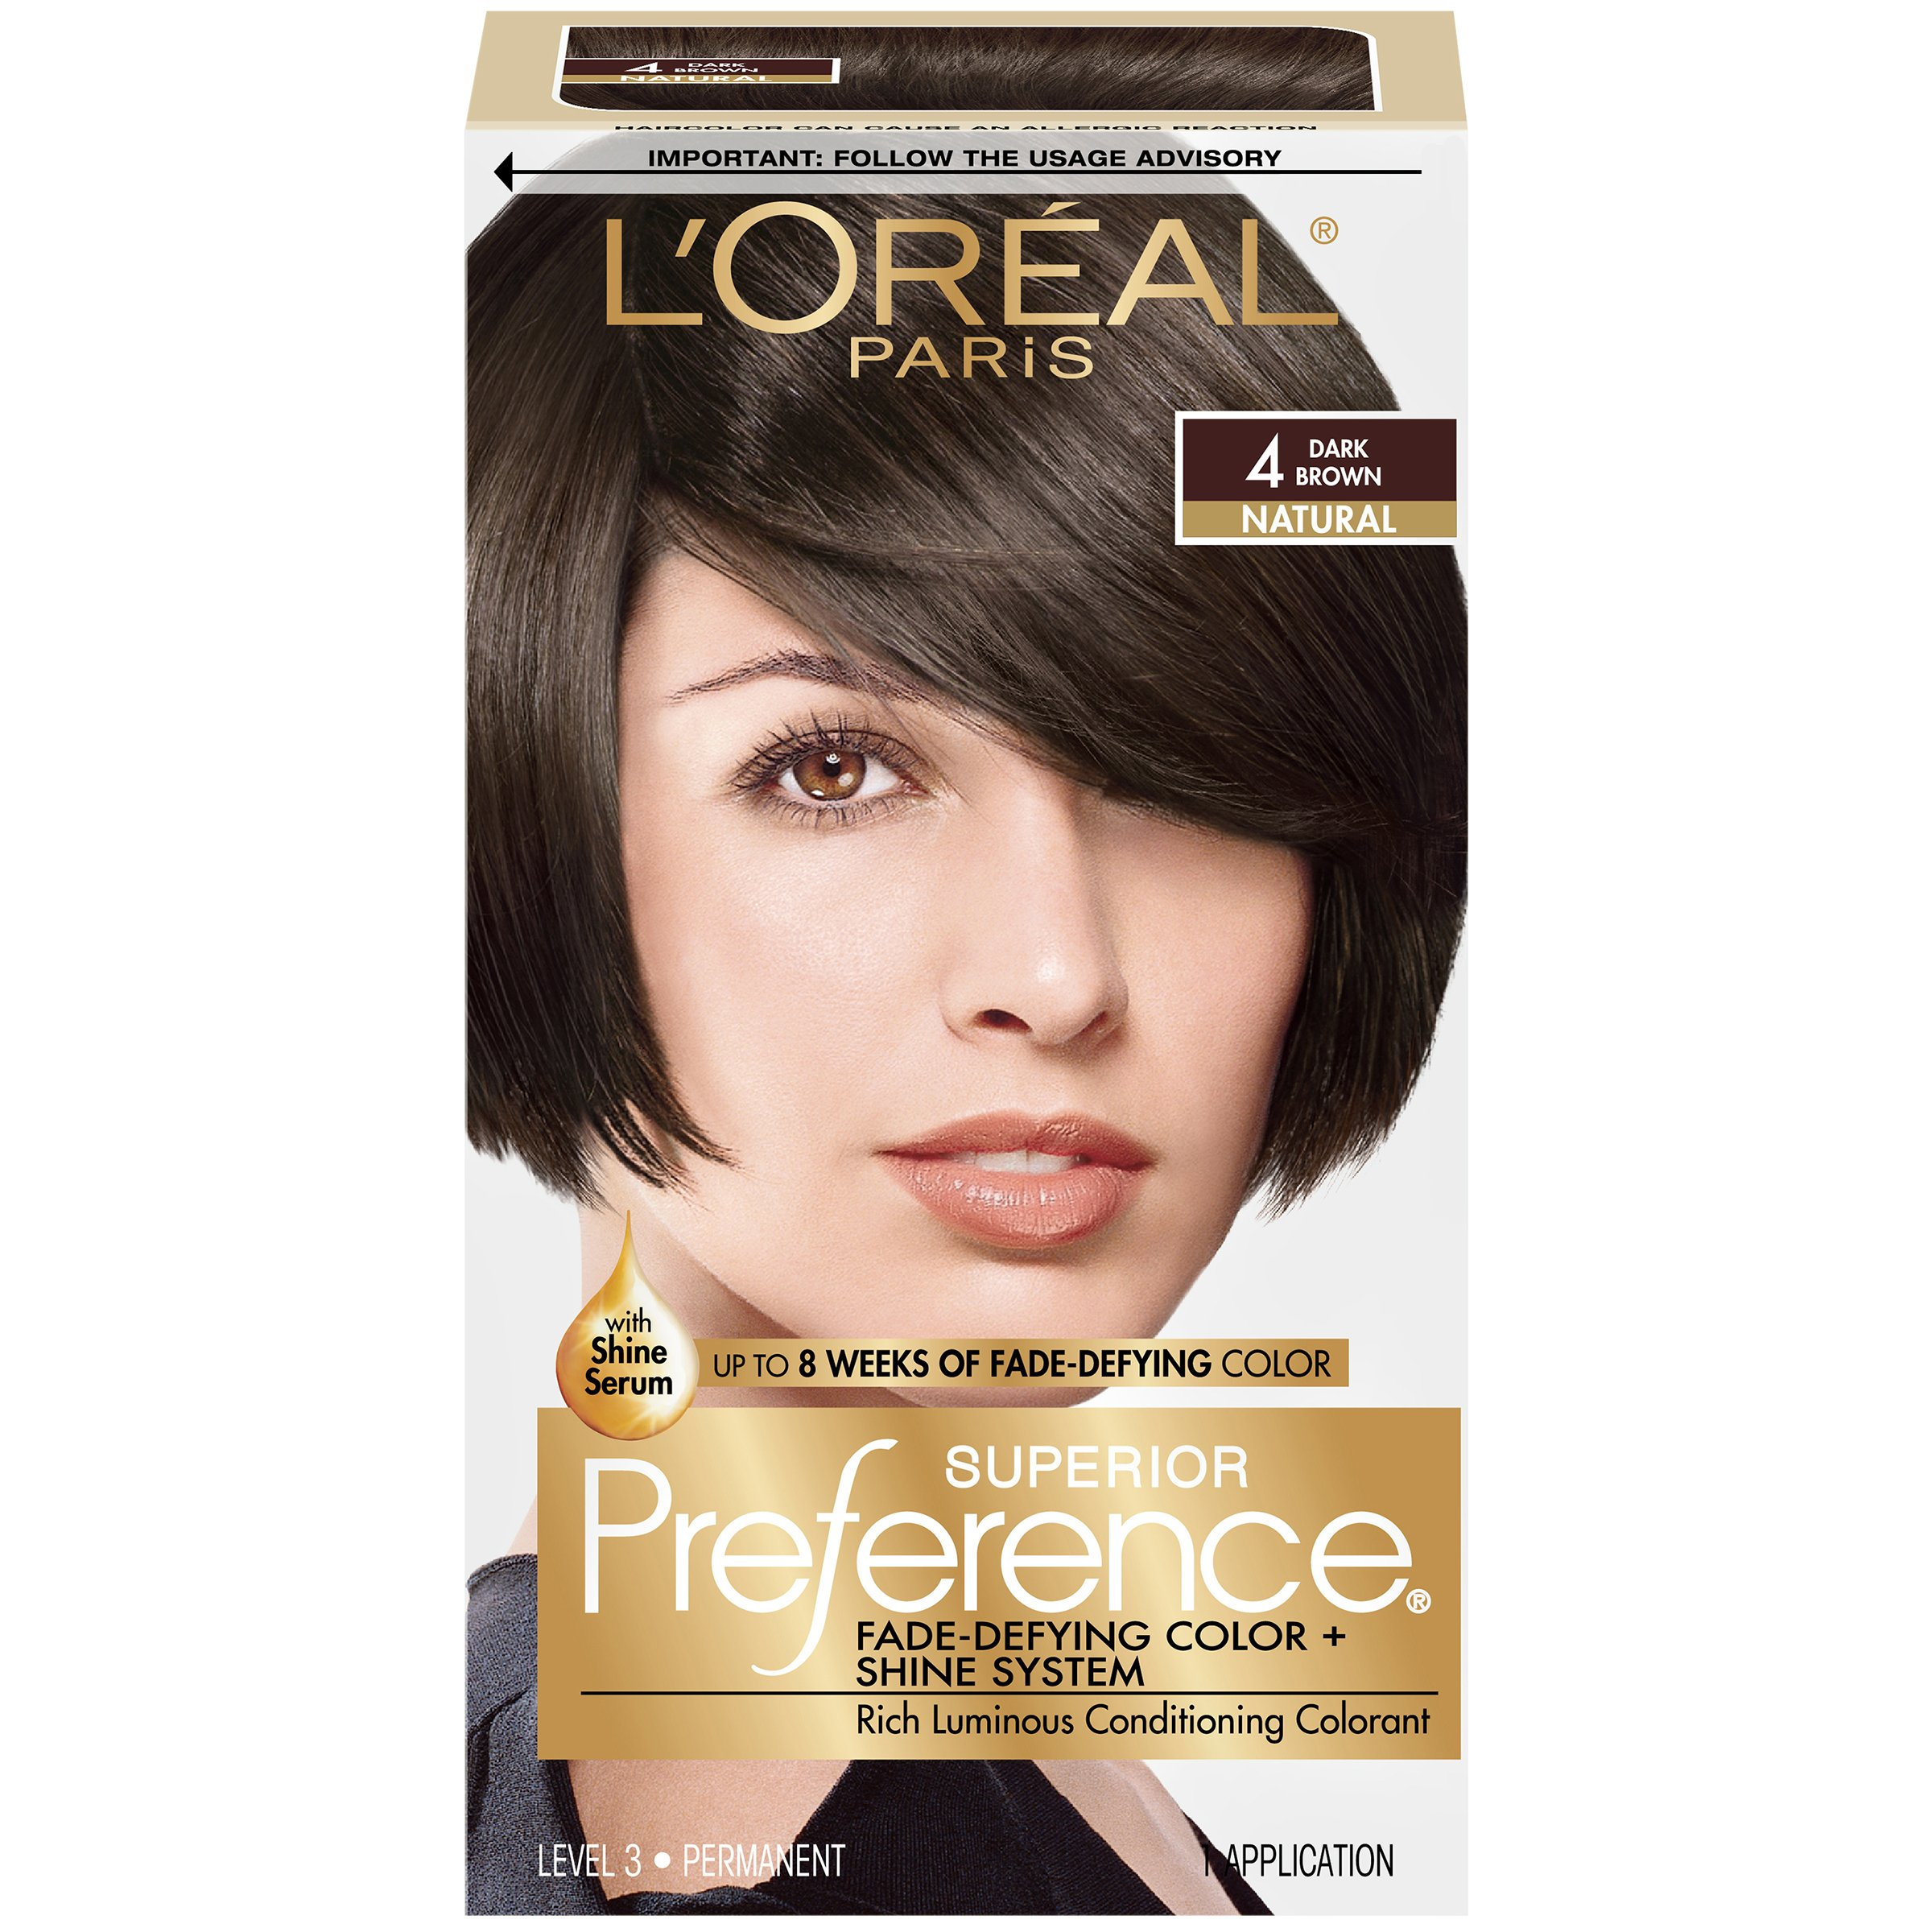 L'Oréal Paris Superior Preference Permanent Hair Color, 4 Dark Brown